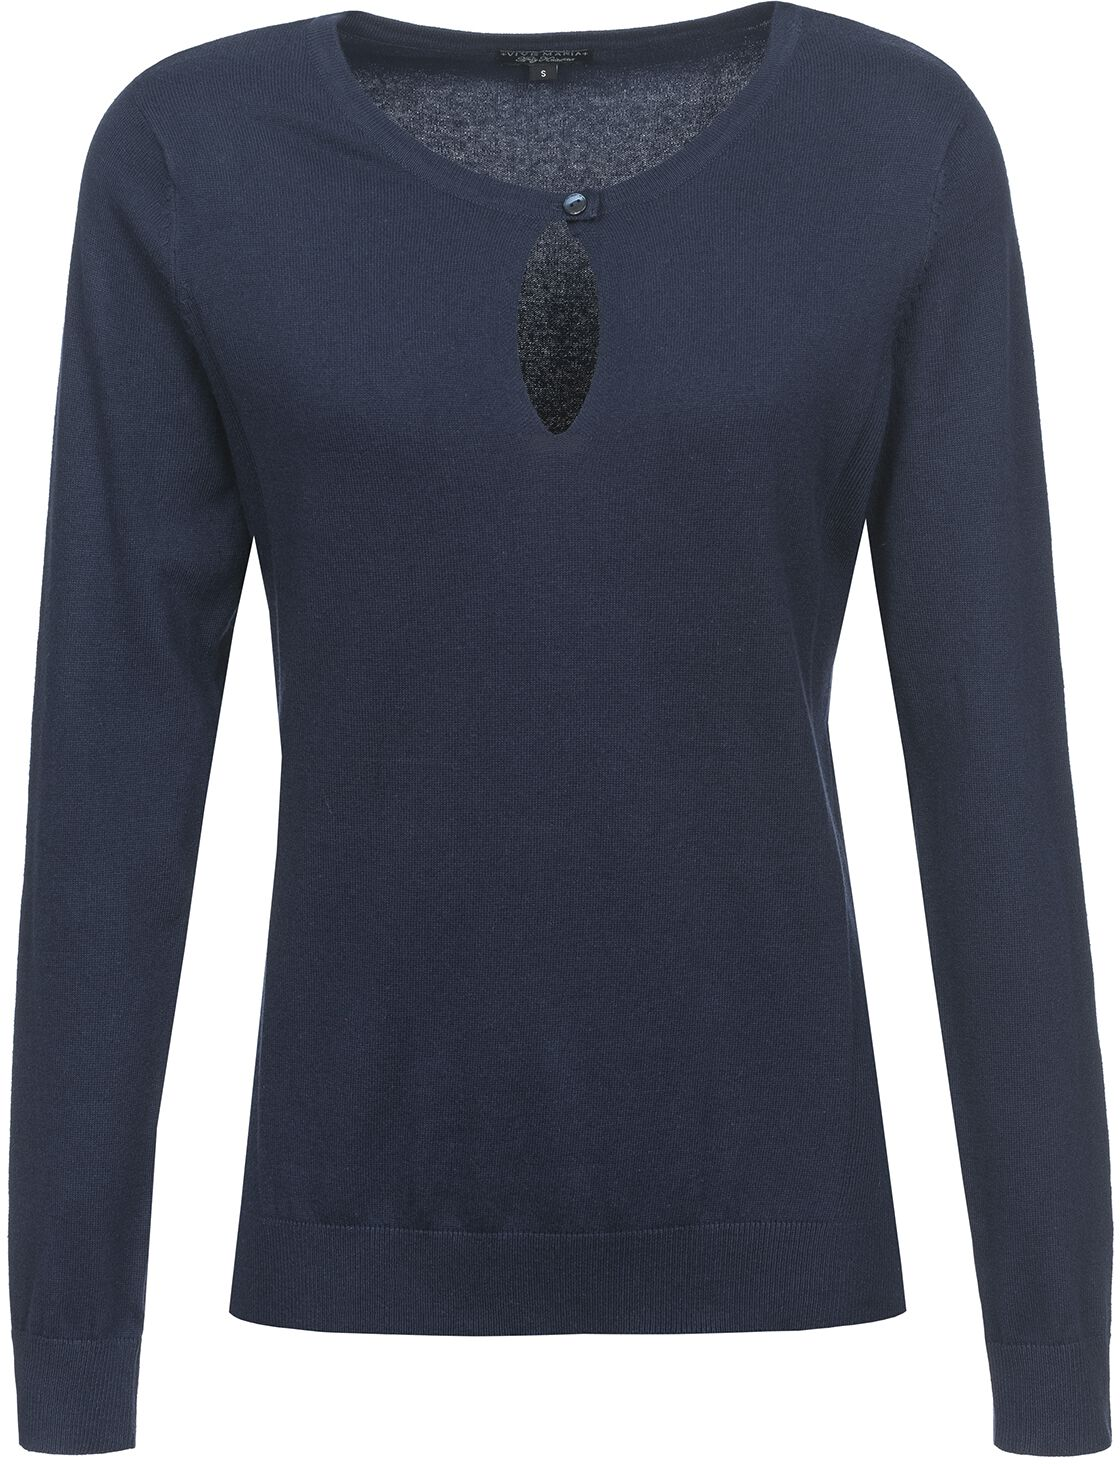 Image of Vive Maria 50ies Look Pullover Pullover donna blu navy